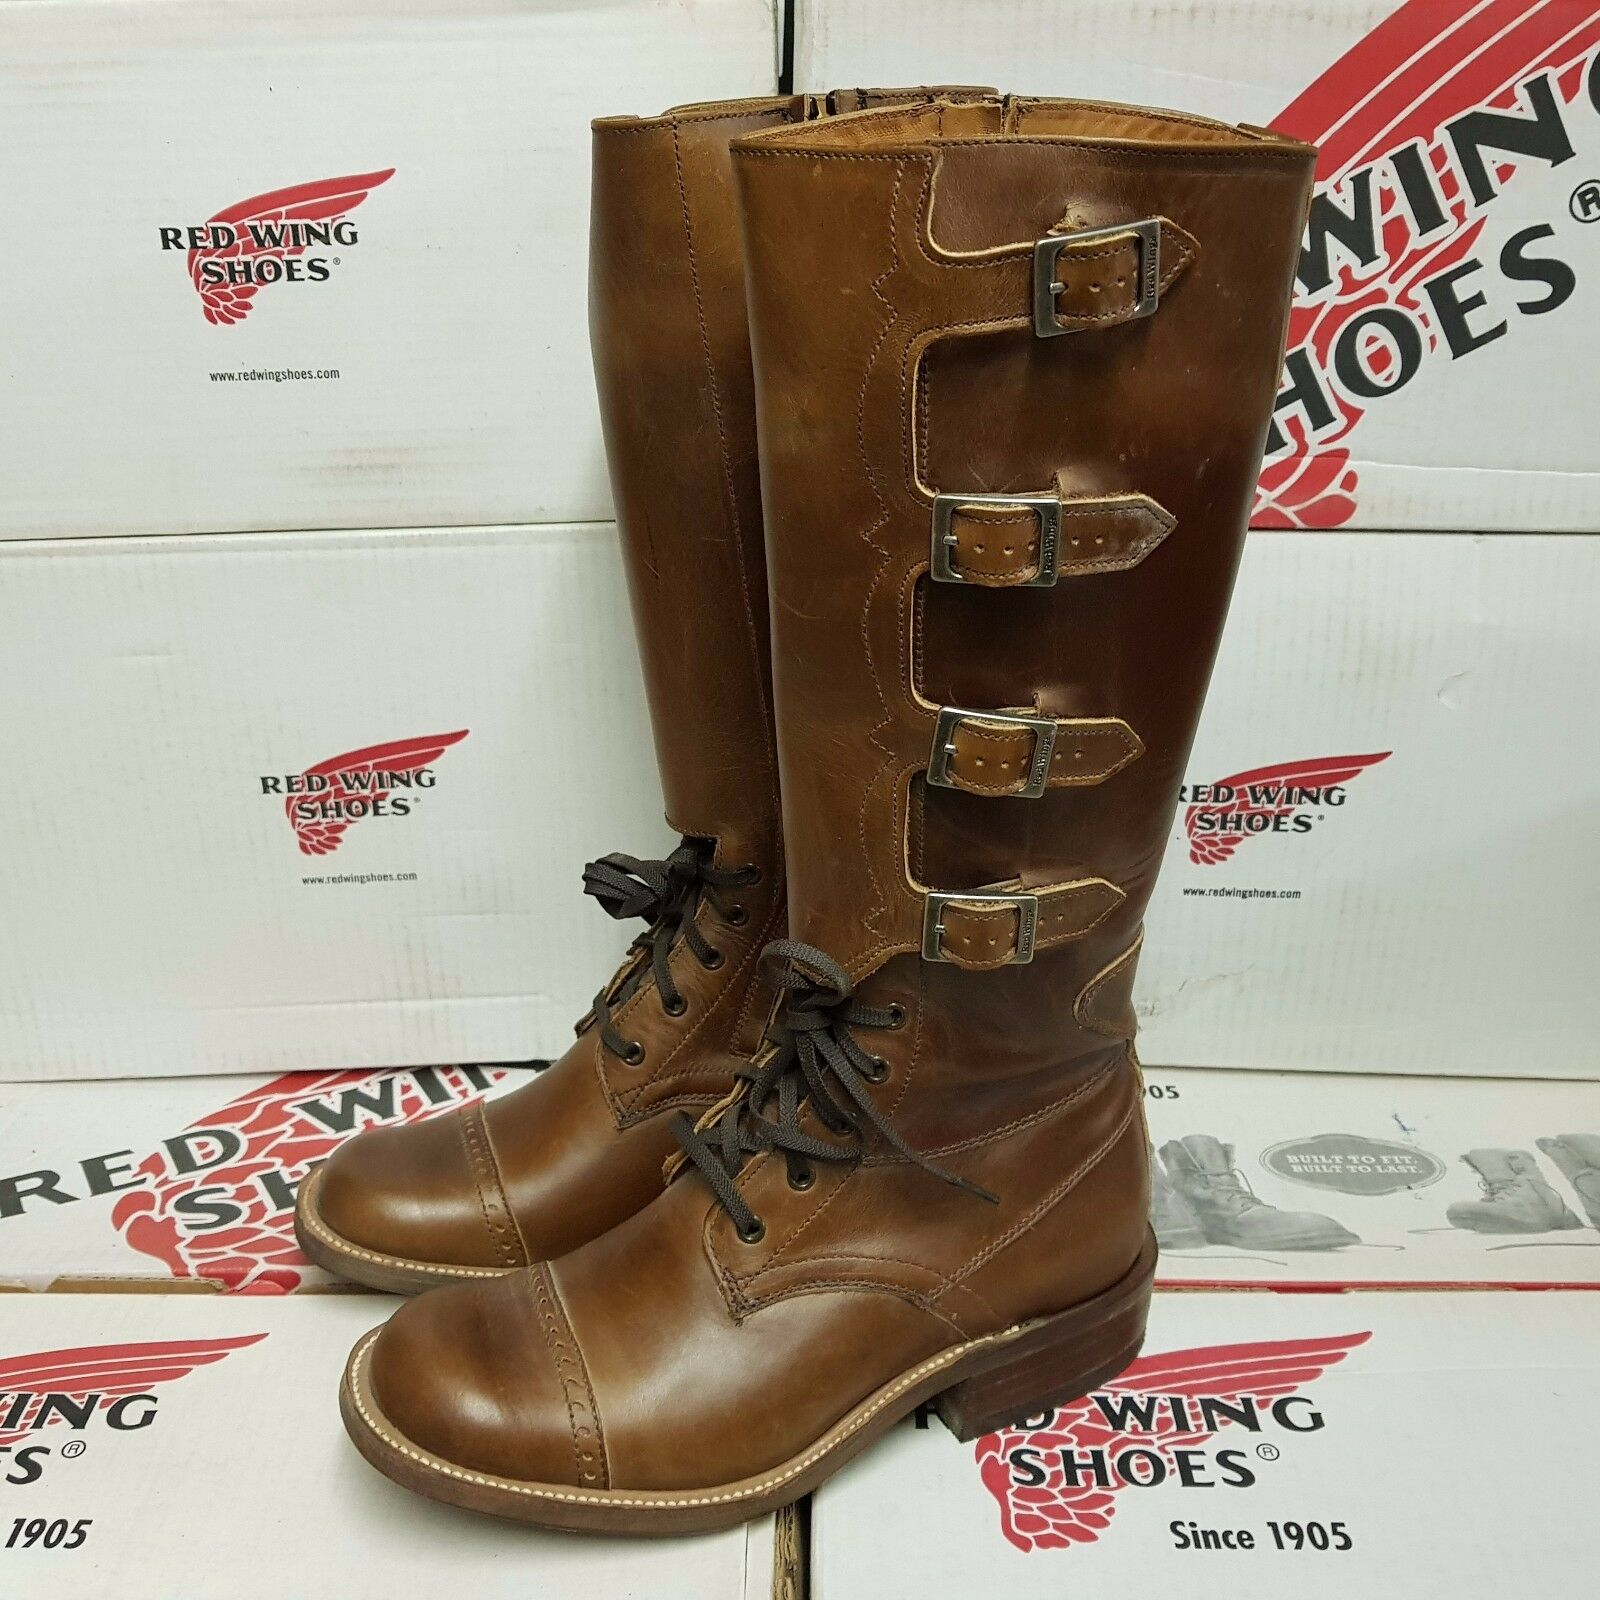 RED WING SHOES 9065 Buckle women's leather boots US 8,5 (pv:599$)